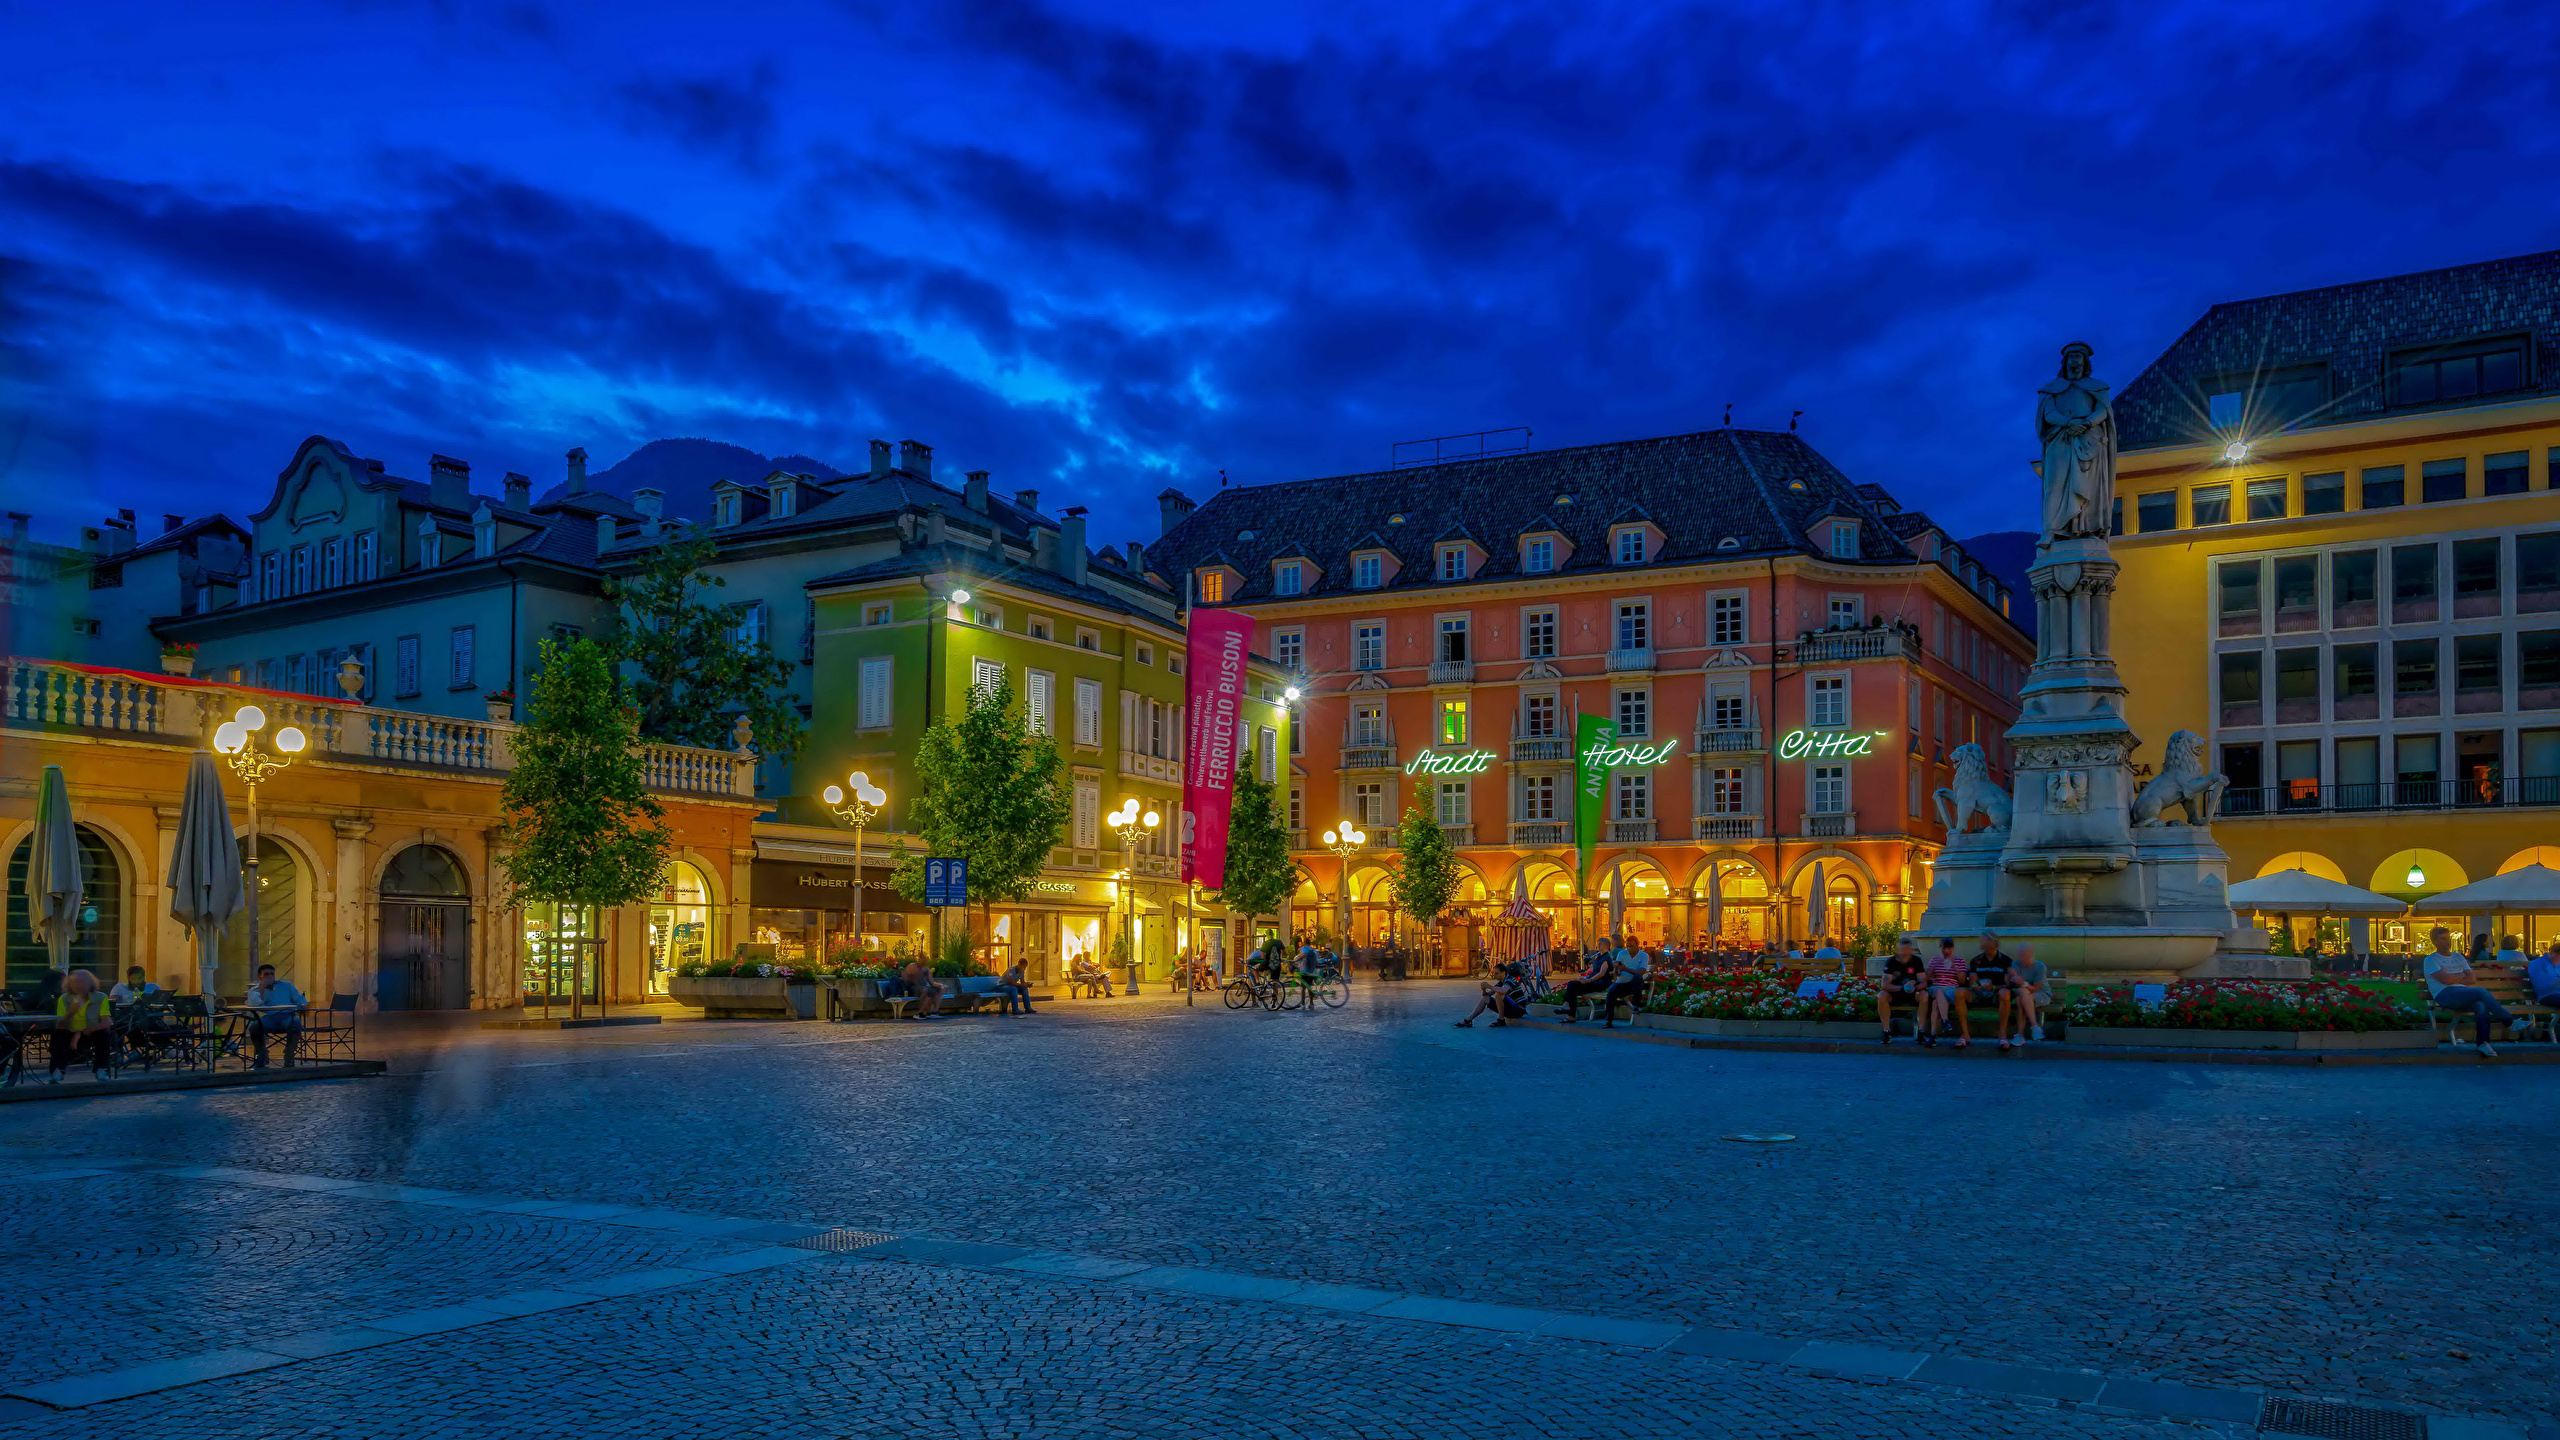 Desktop Wallpapers Italy Monuments Town square Bolzano 2560x1440 2560x1440